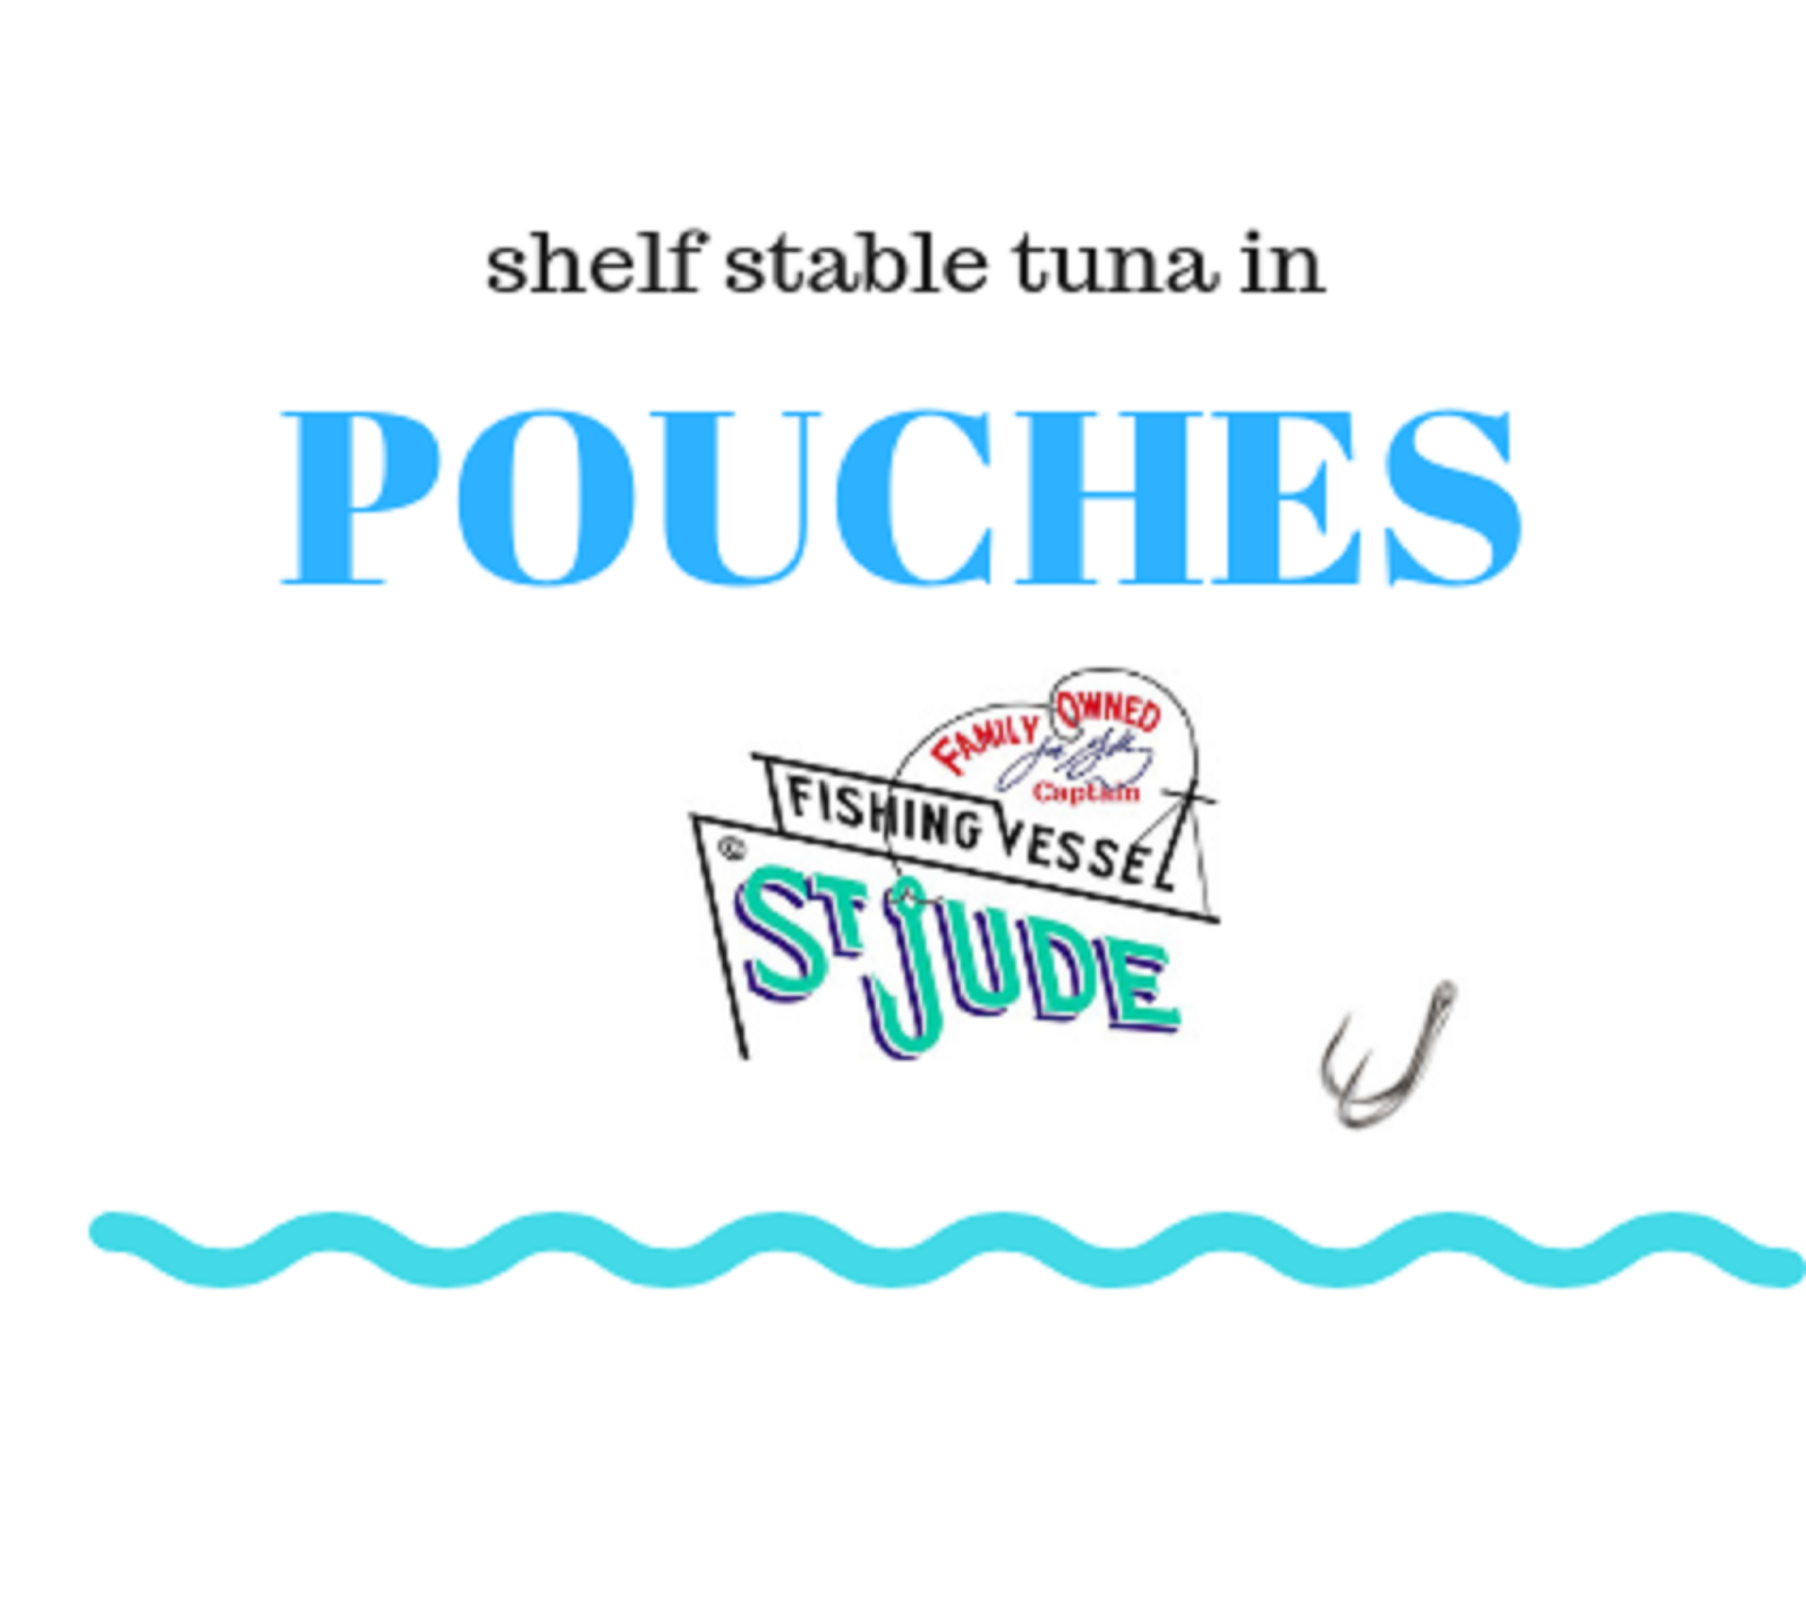 St. Jude Pouch Pack Albacore Tuna  (Shelf Stable)